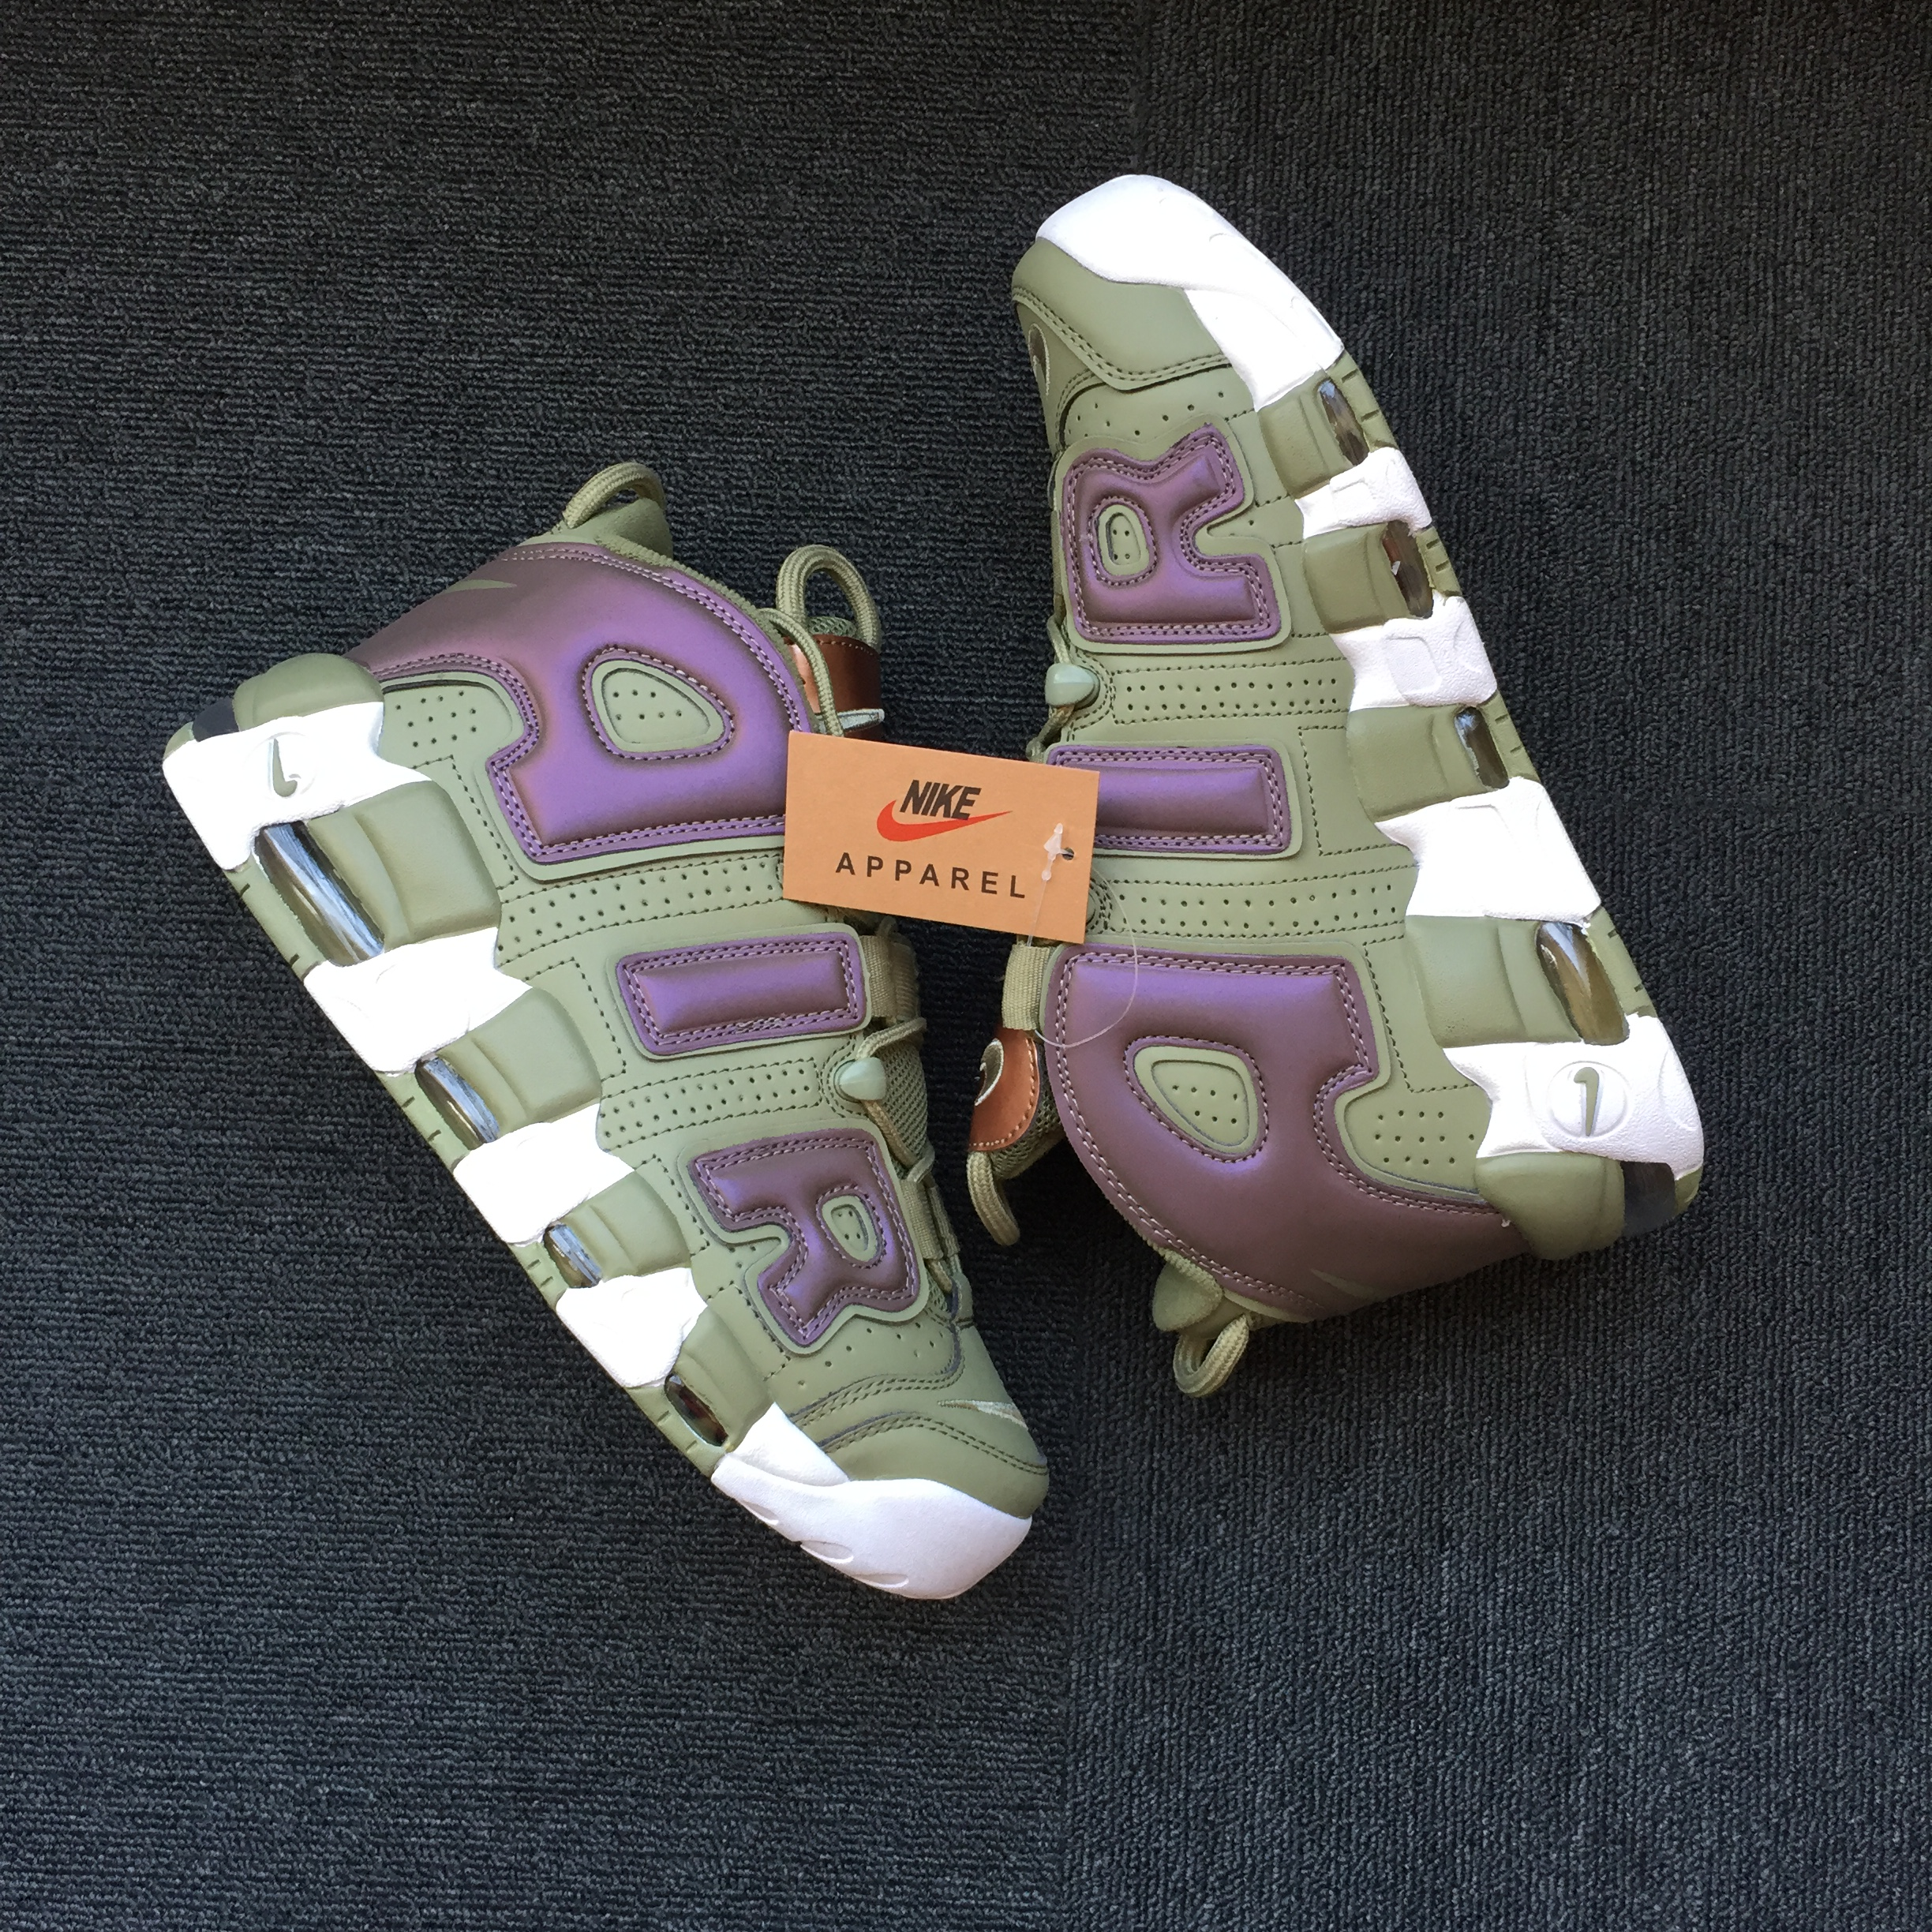 Nike Air More Uptempo Army Green Purple Shoes